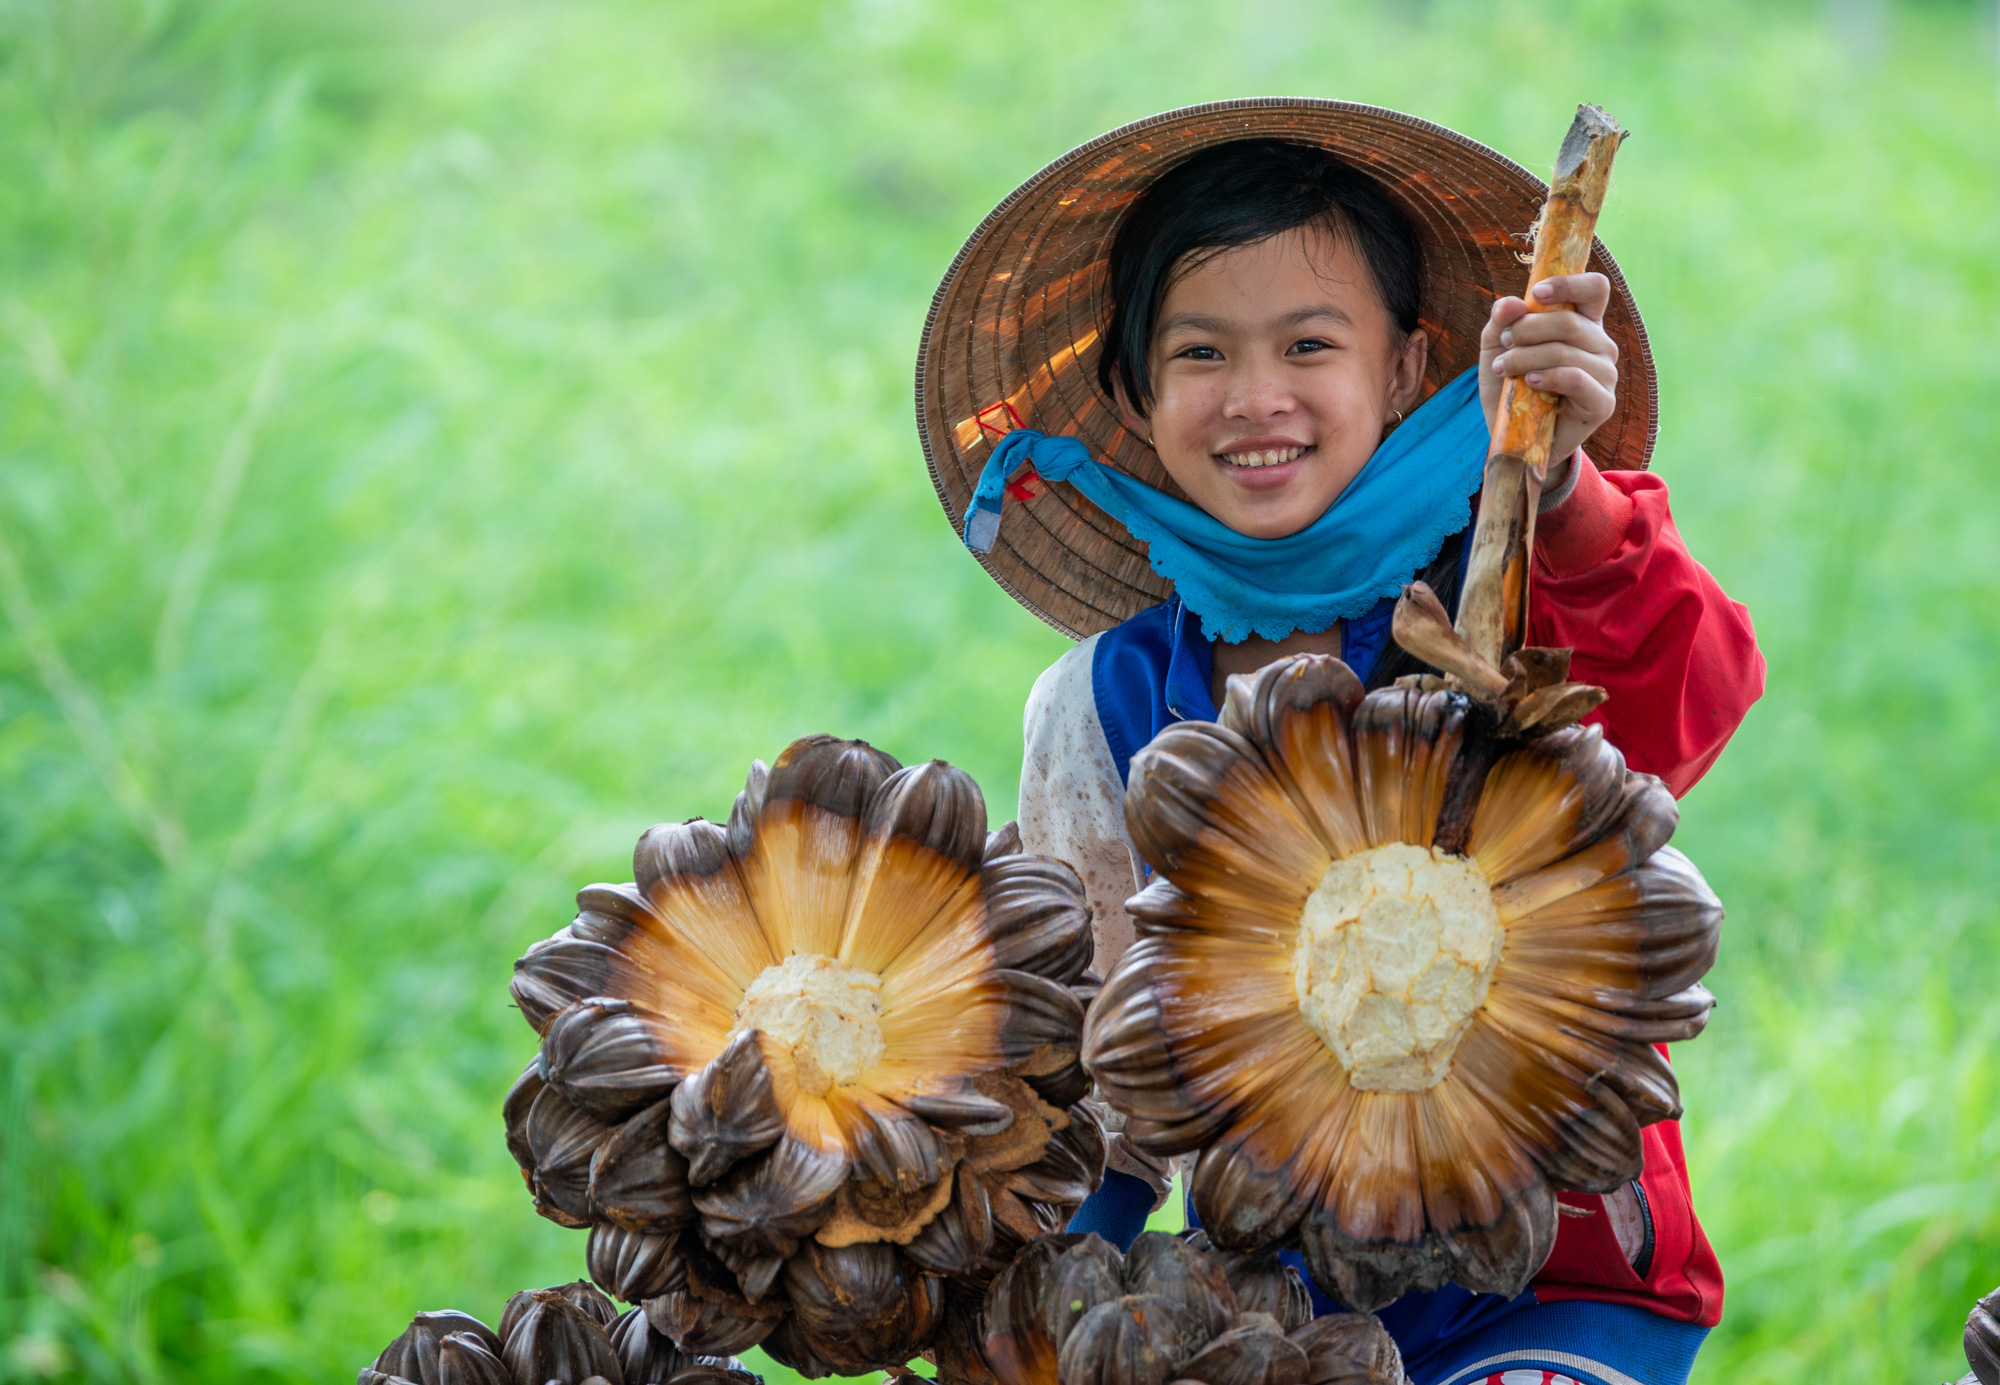 Photos capture beauty of Ho Chi Minh City's rural Can Gio District